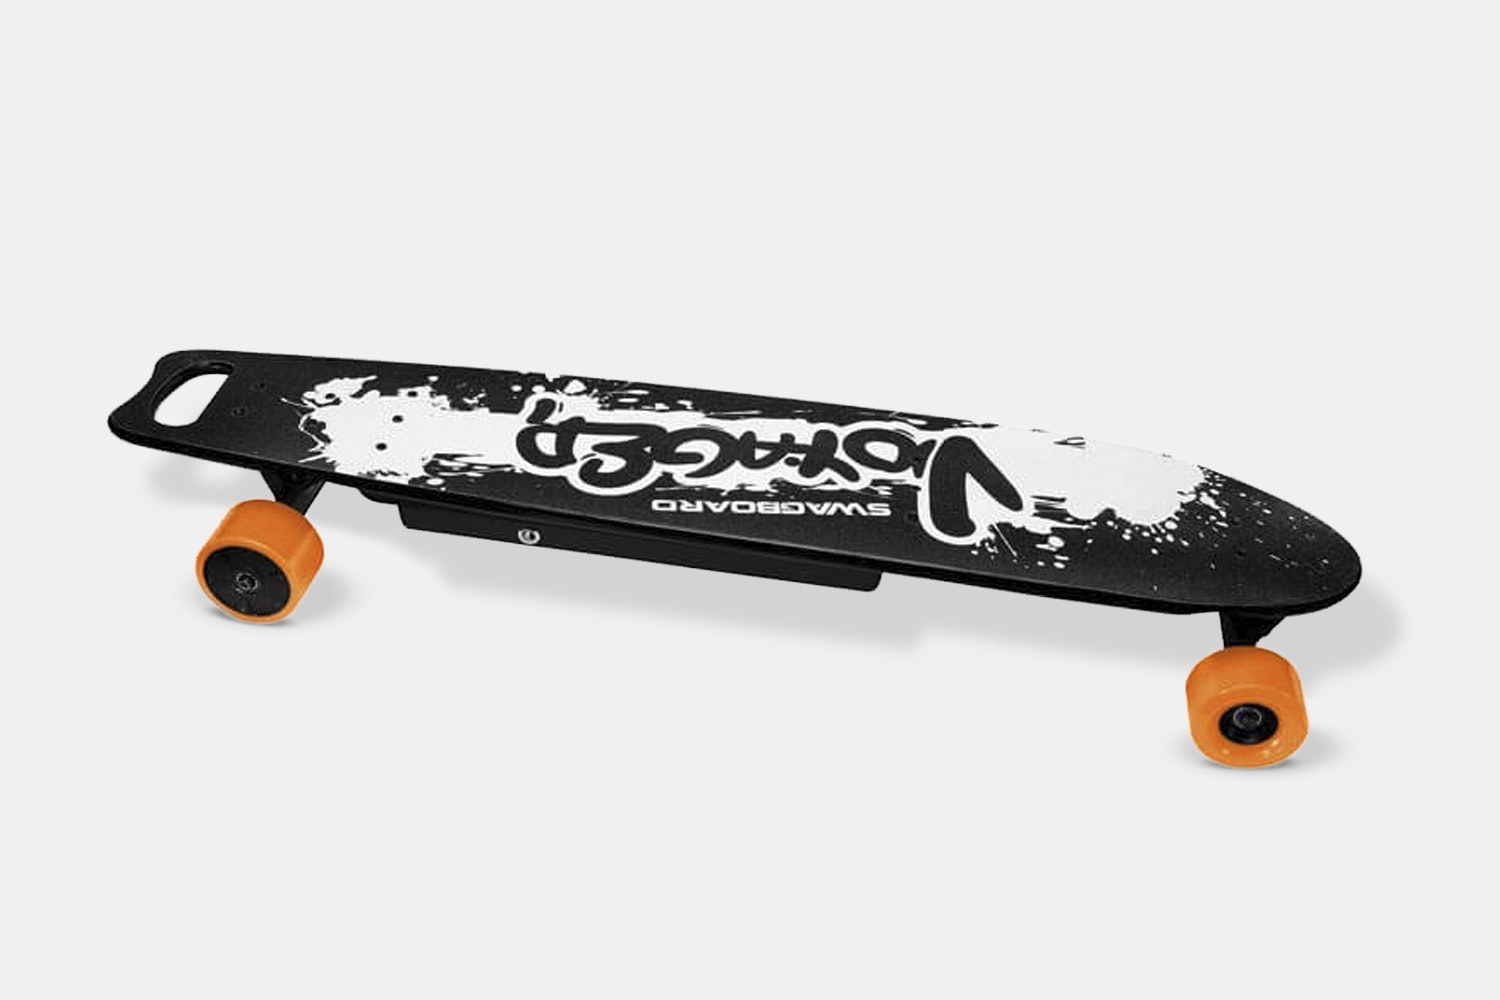 Swagboard Voyager (+ $90)